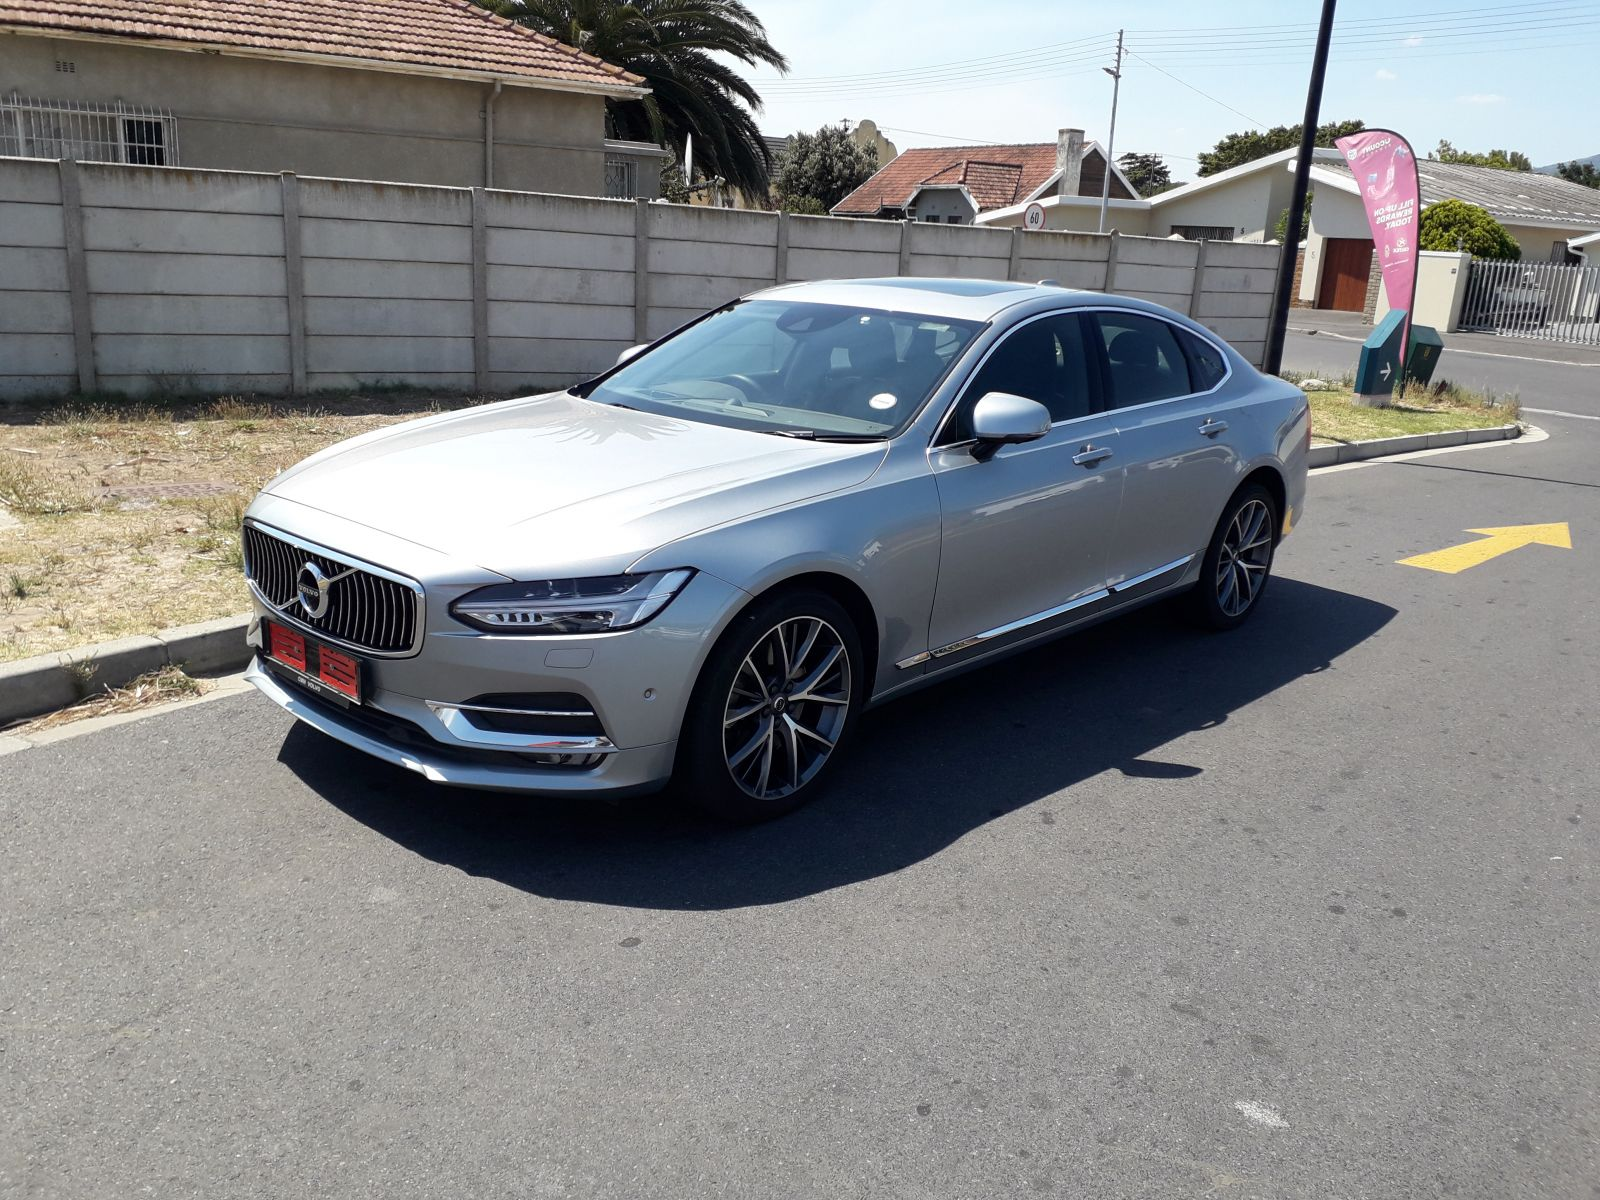 S90 D5 INSCRIPTION GEARTRONIC AWD